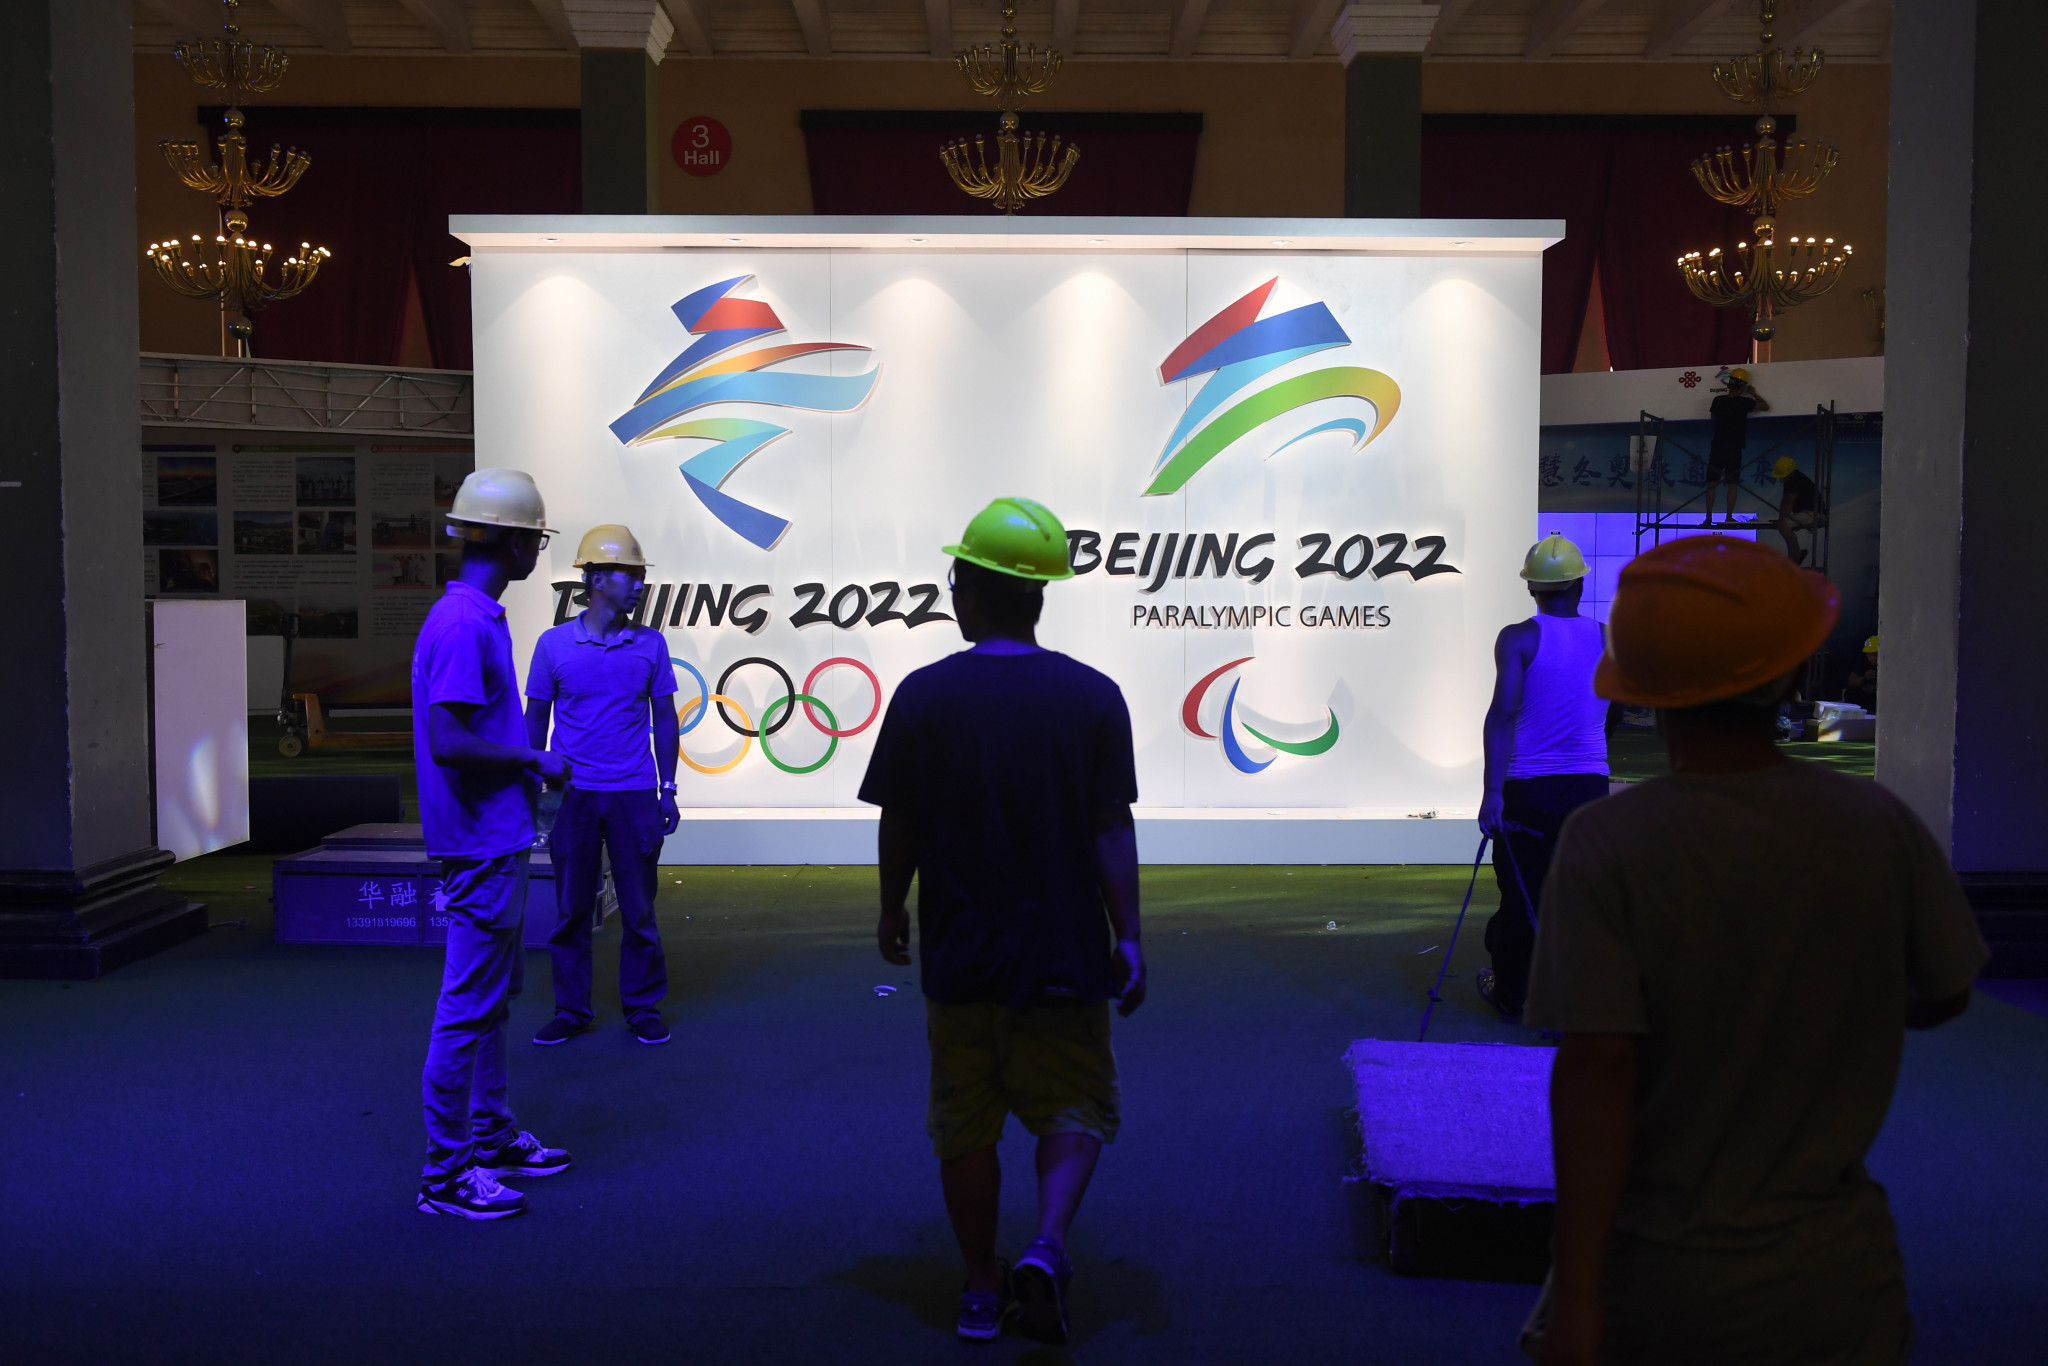 There have been calls for Beijing 2022 to be boycotted in response to China's disturbing record on human rights ©Getty Images